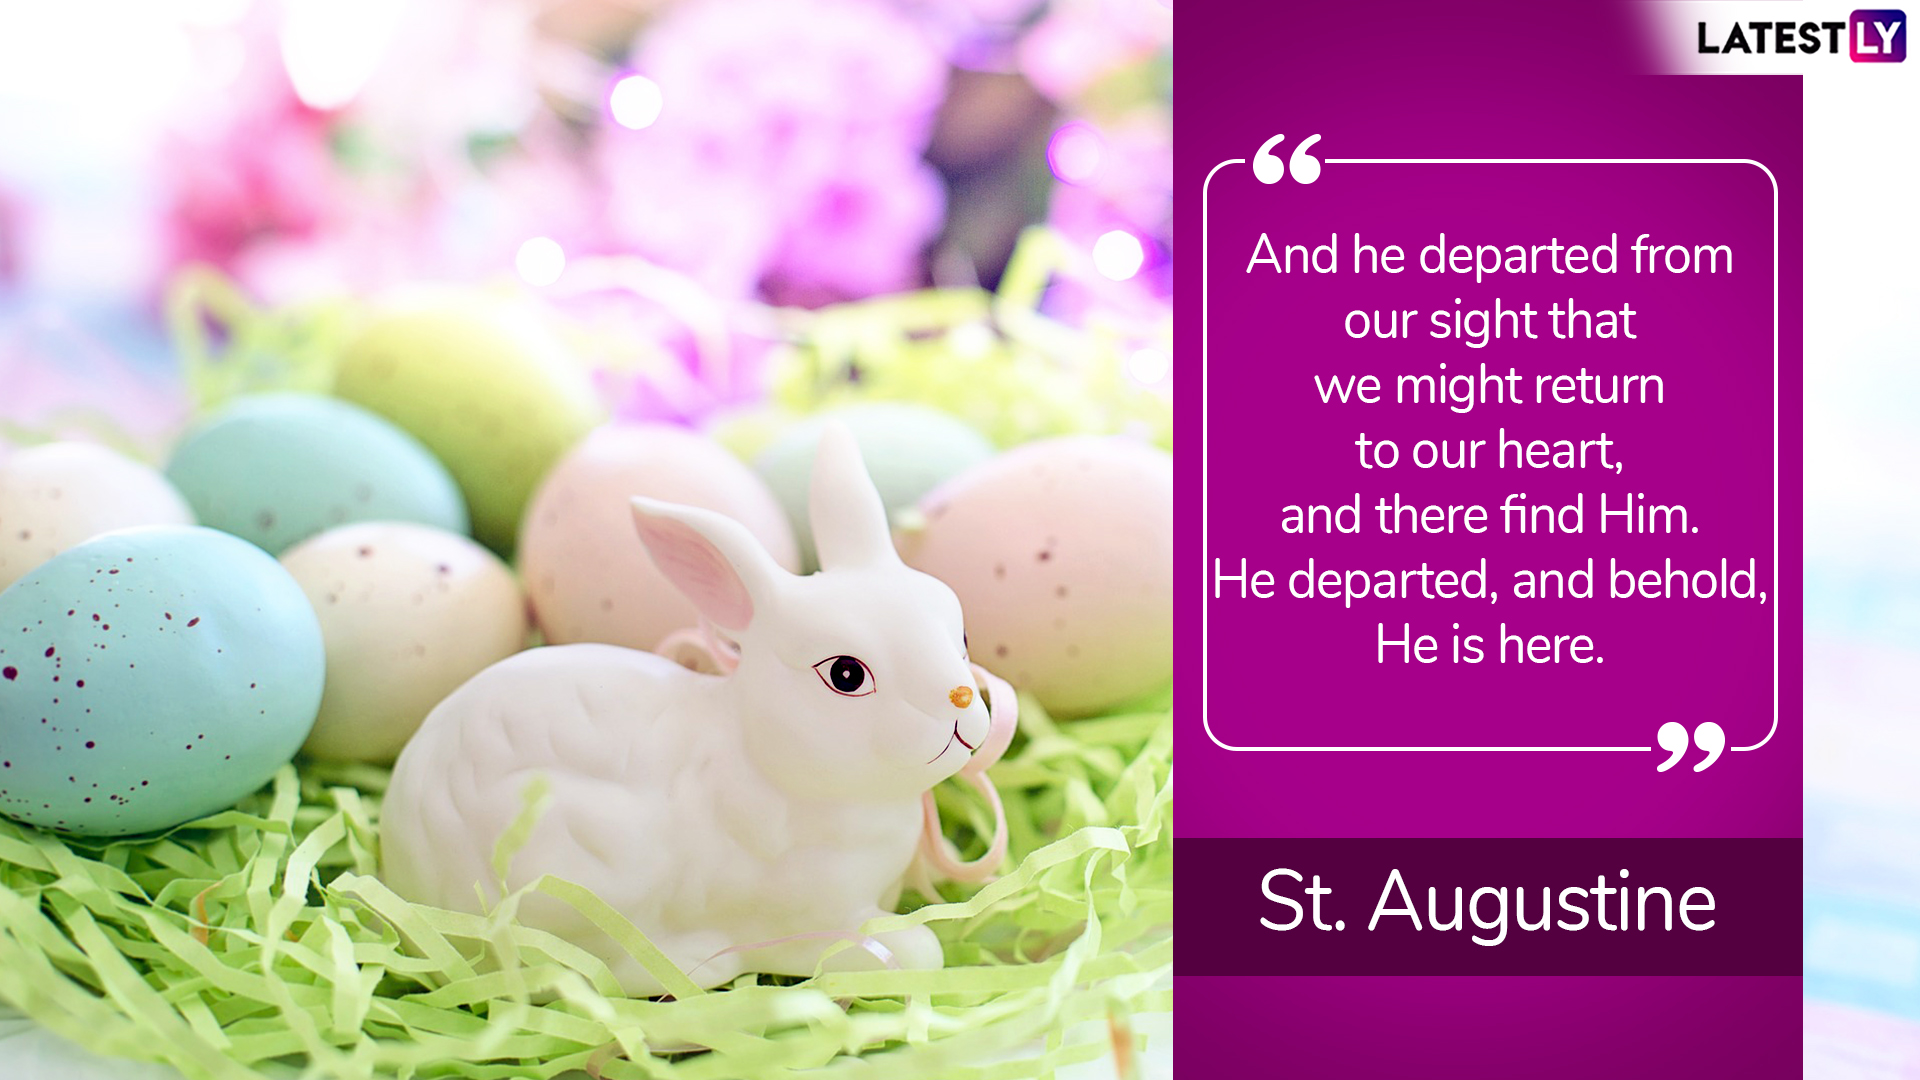 Easter 2019 Quotes: Easter Sunday HD Images & Inspirational ...